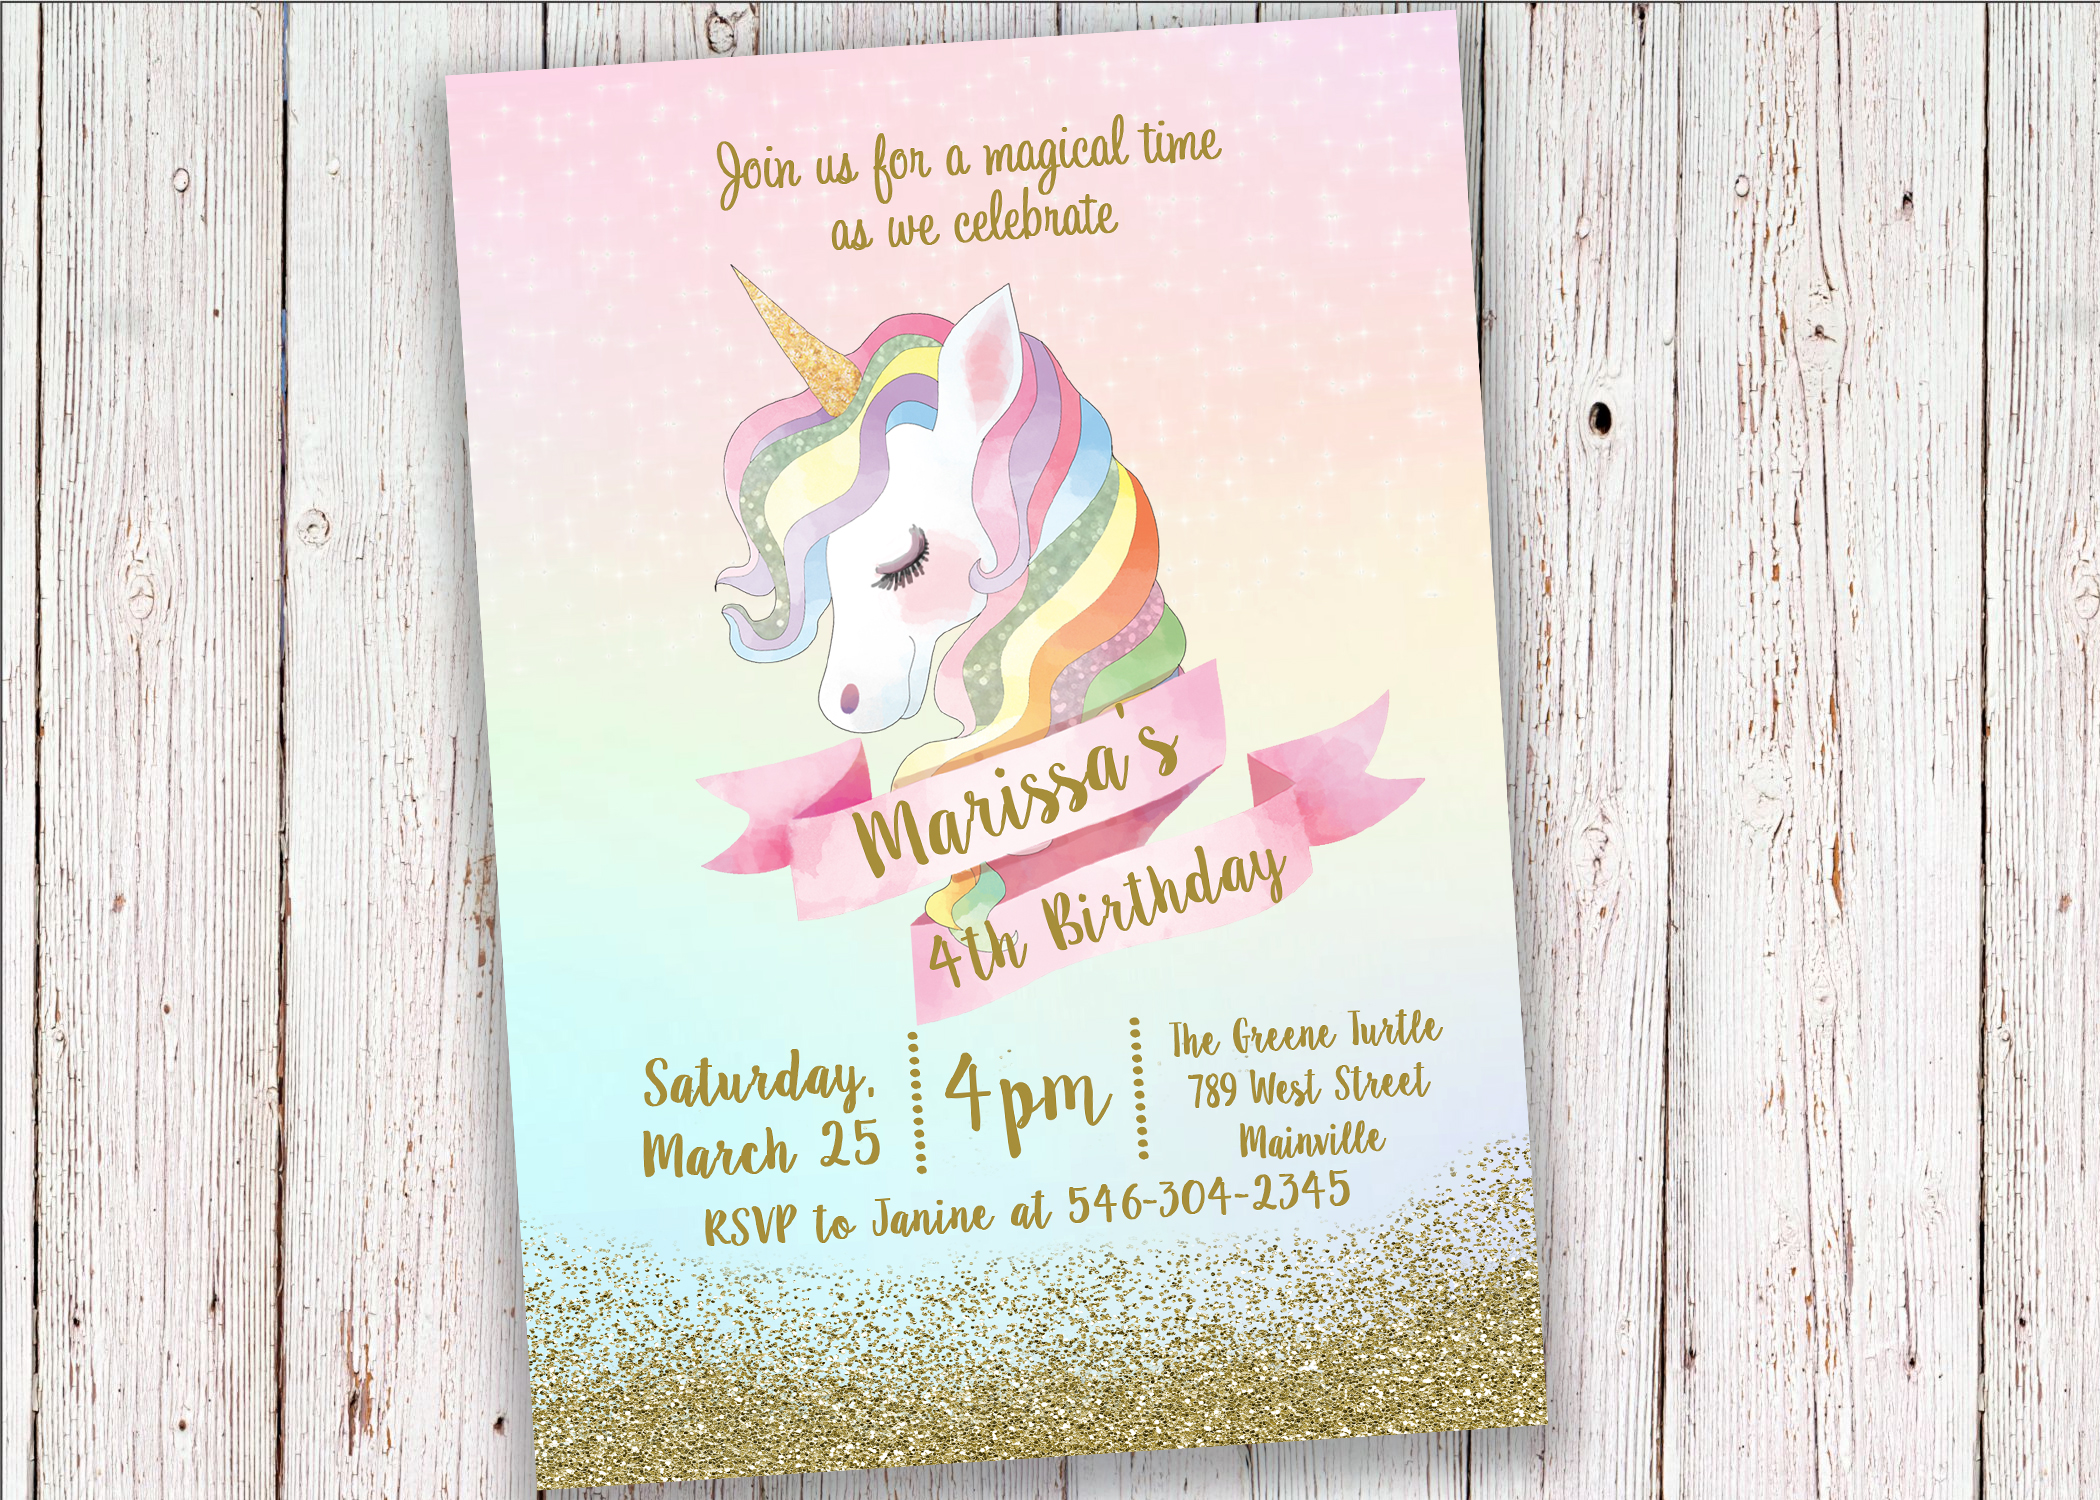 Unicorn 20invitation 20 231 1 Original